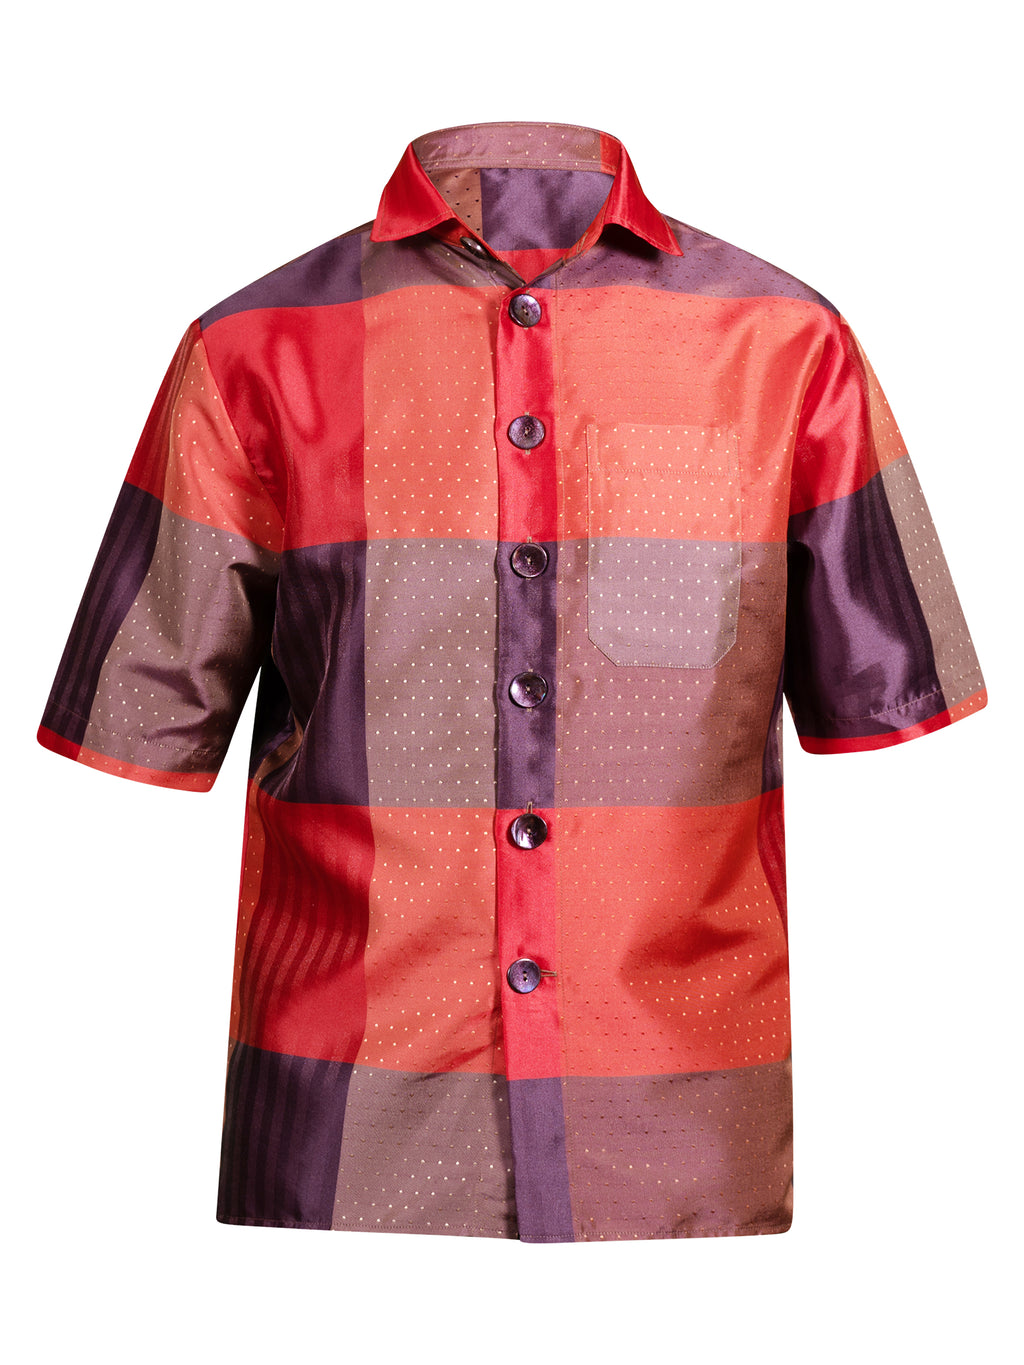 KULIK Half Moon with Golden Eye Handbag